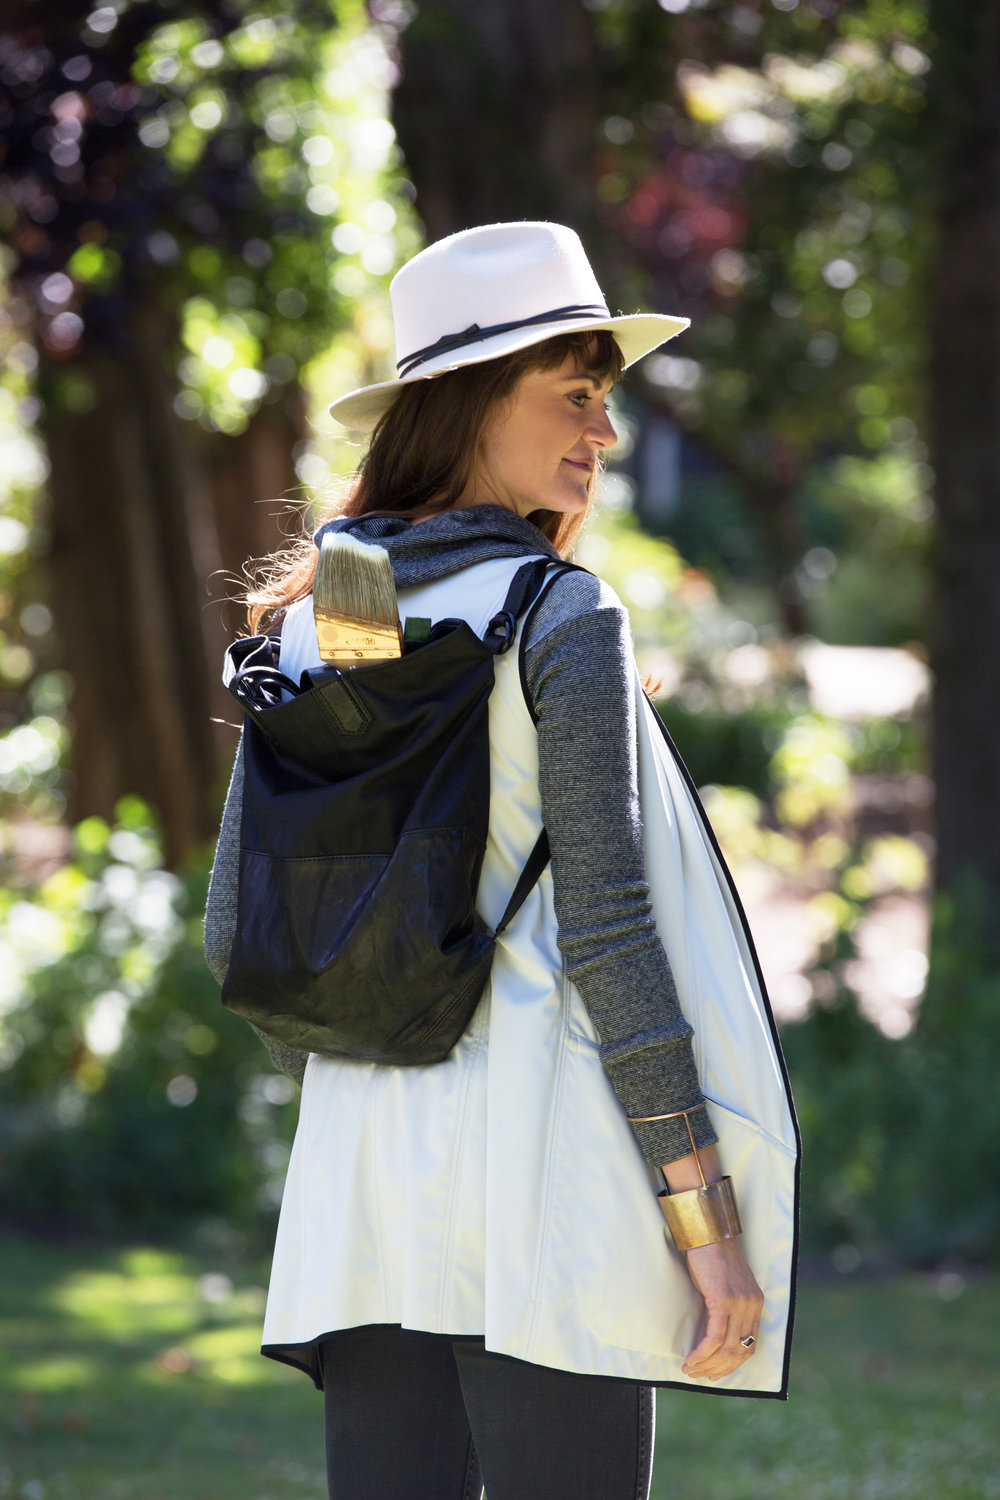 On Maja: Olivier Sweater | Katya Vest | Rogue Hat | Manhattan Tote Bag